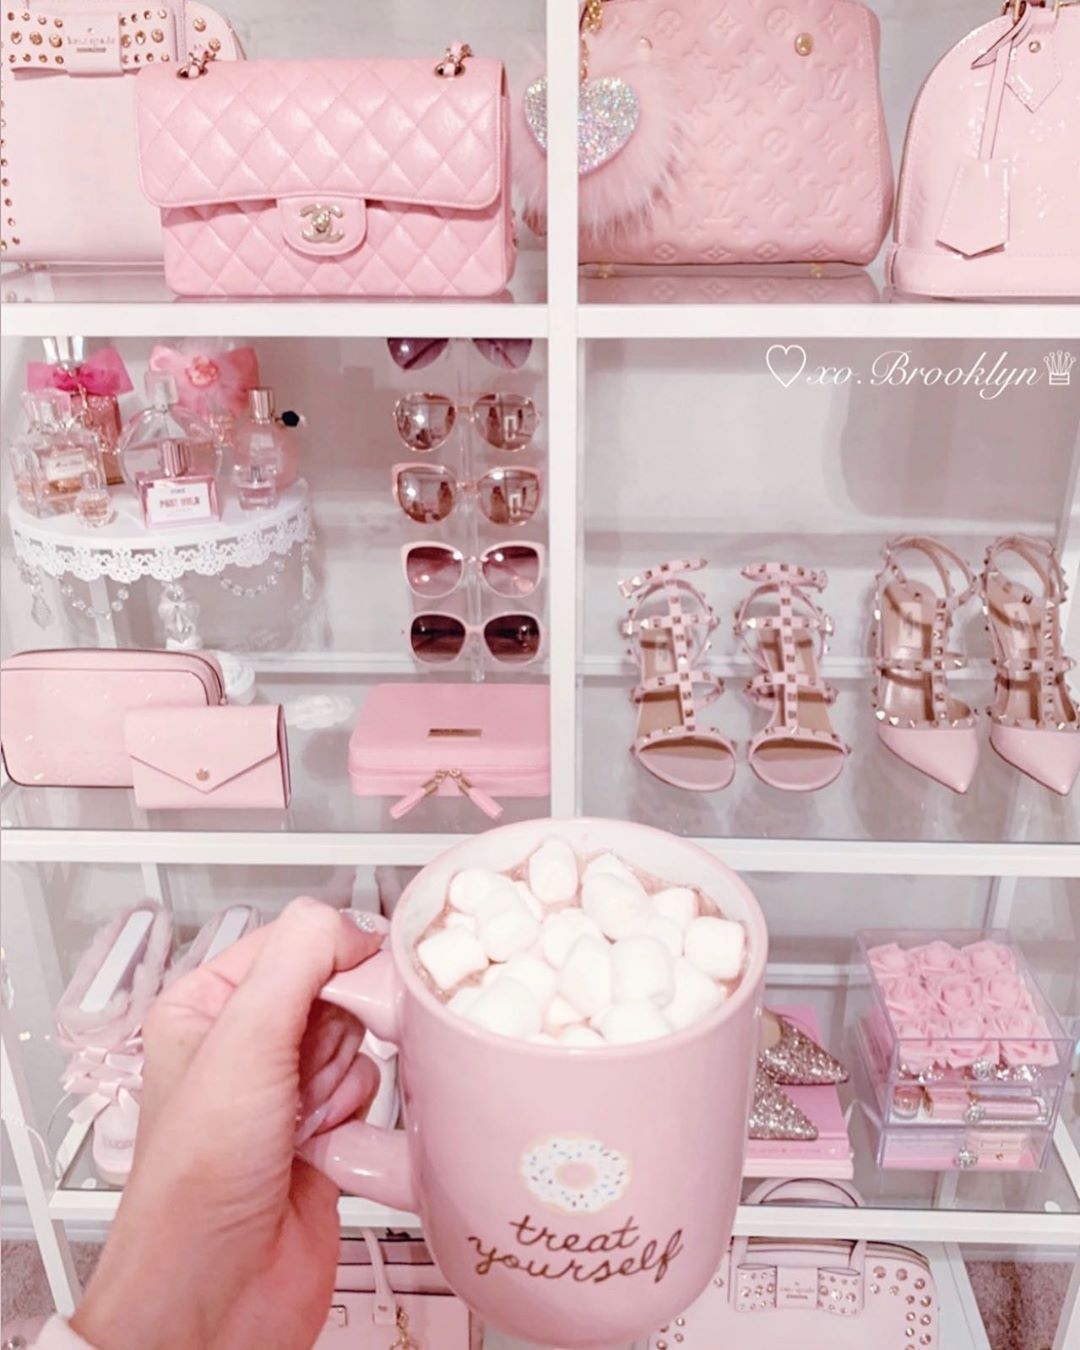 Pin By Its Yanna On Glitter In 2020 Baby Pink Aesthetic Pink Girly Things Pink Aesthetic